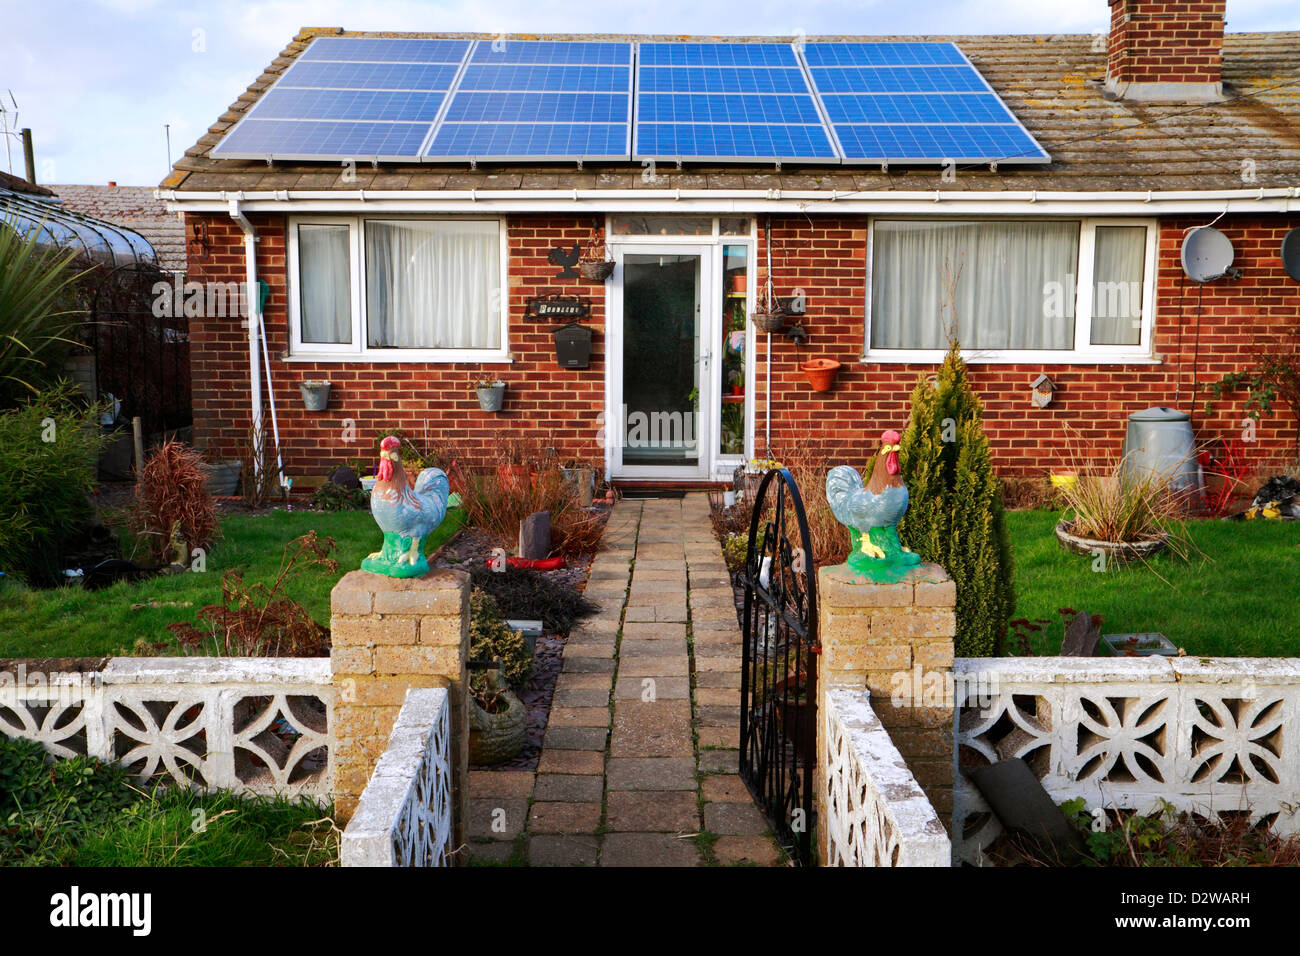 Bungalow with solar panels on roof, Leysdown, Isle of Sheppey, Kent, UK - Stock Image